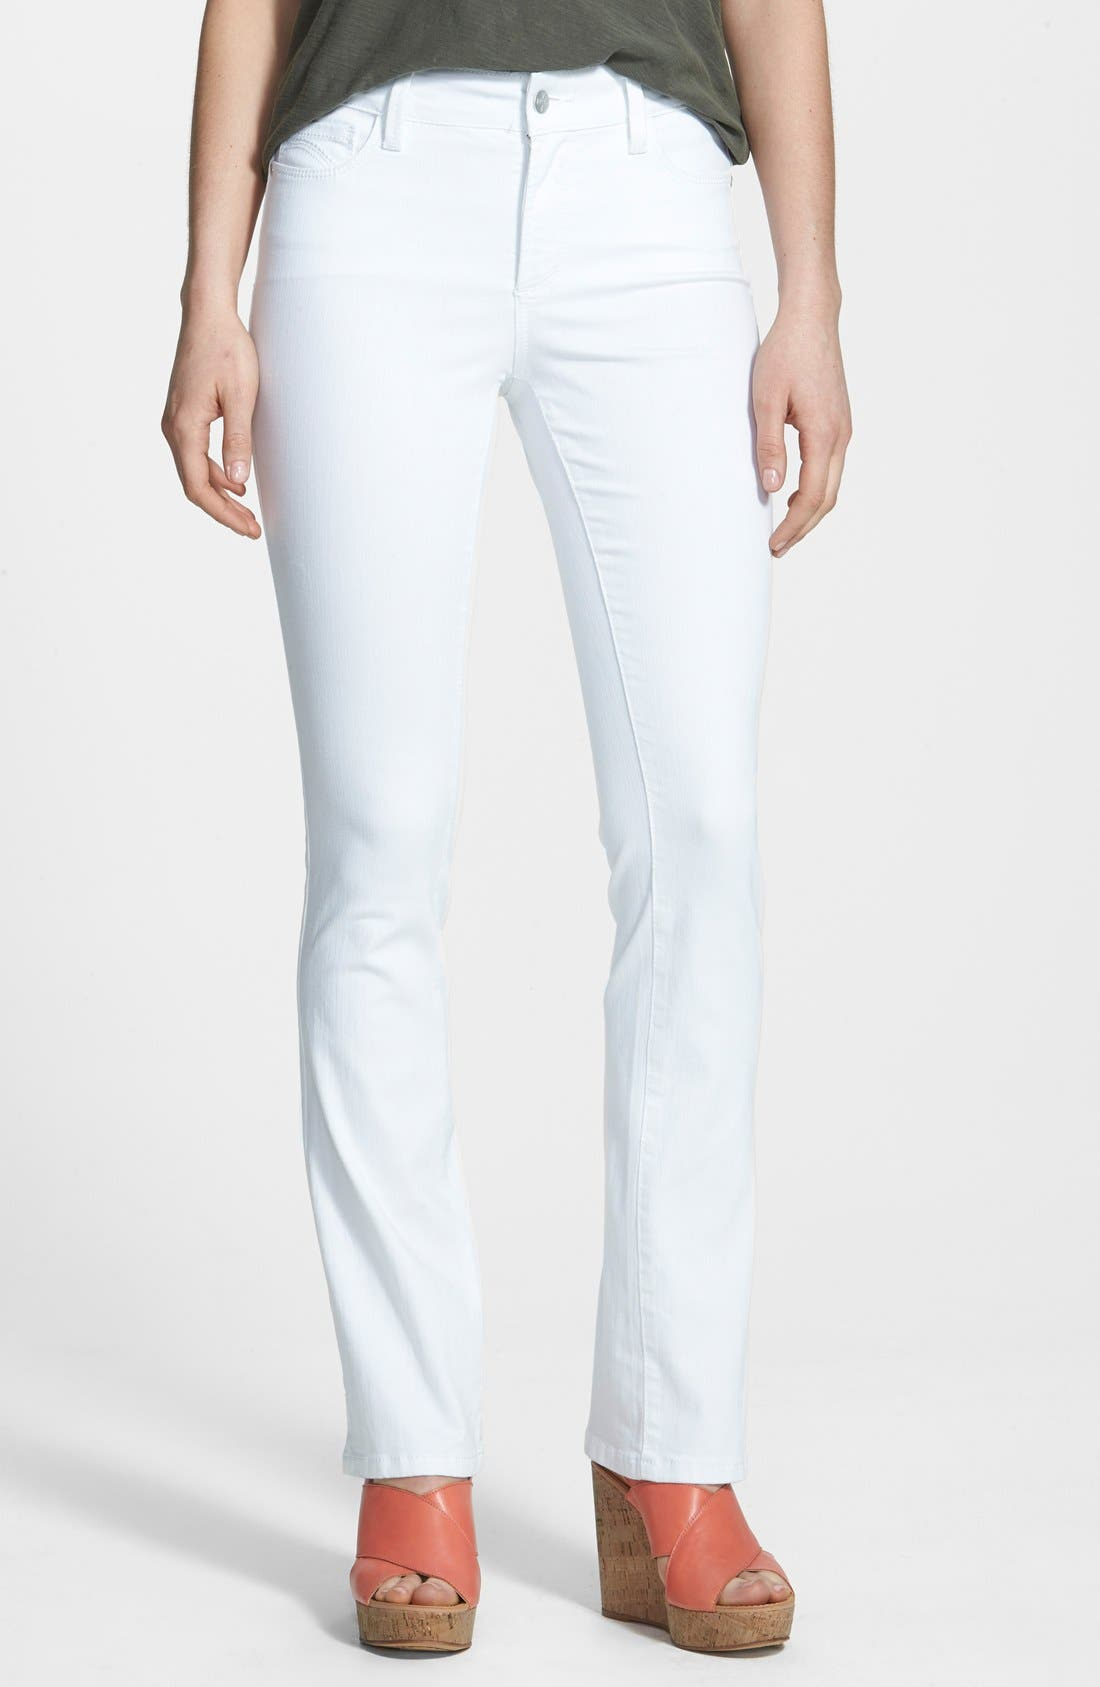 Alternate Image 1 Selected - NYDJ 'Billie' Stretch Mini Bootcut Jeans (Optic White) (Regular & Petite)